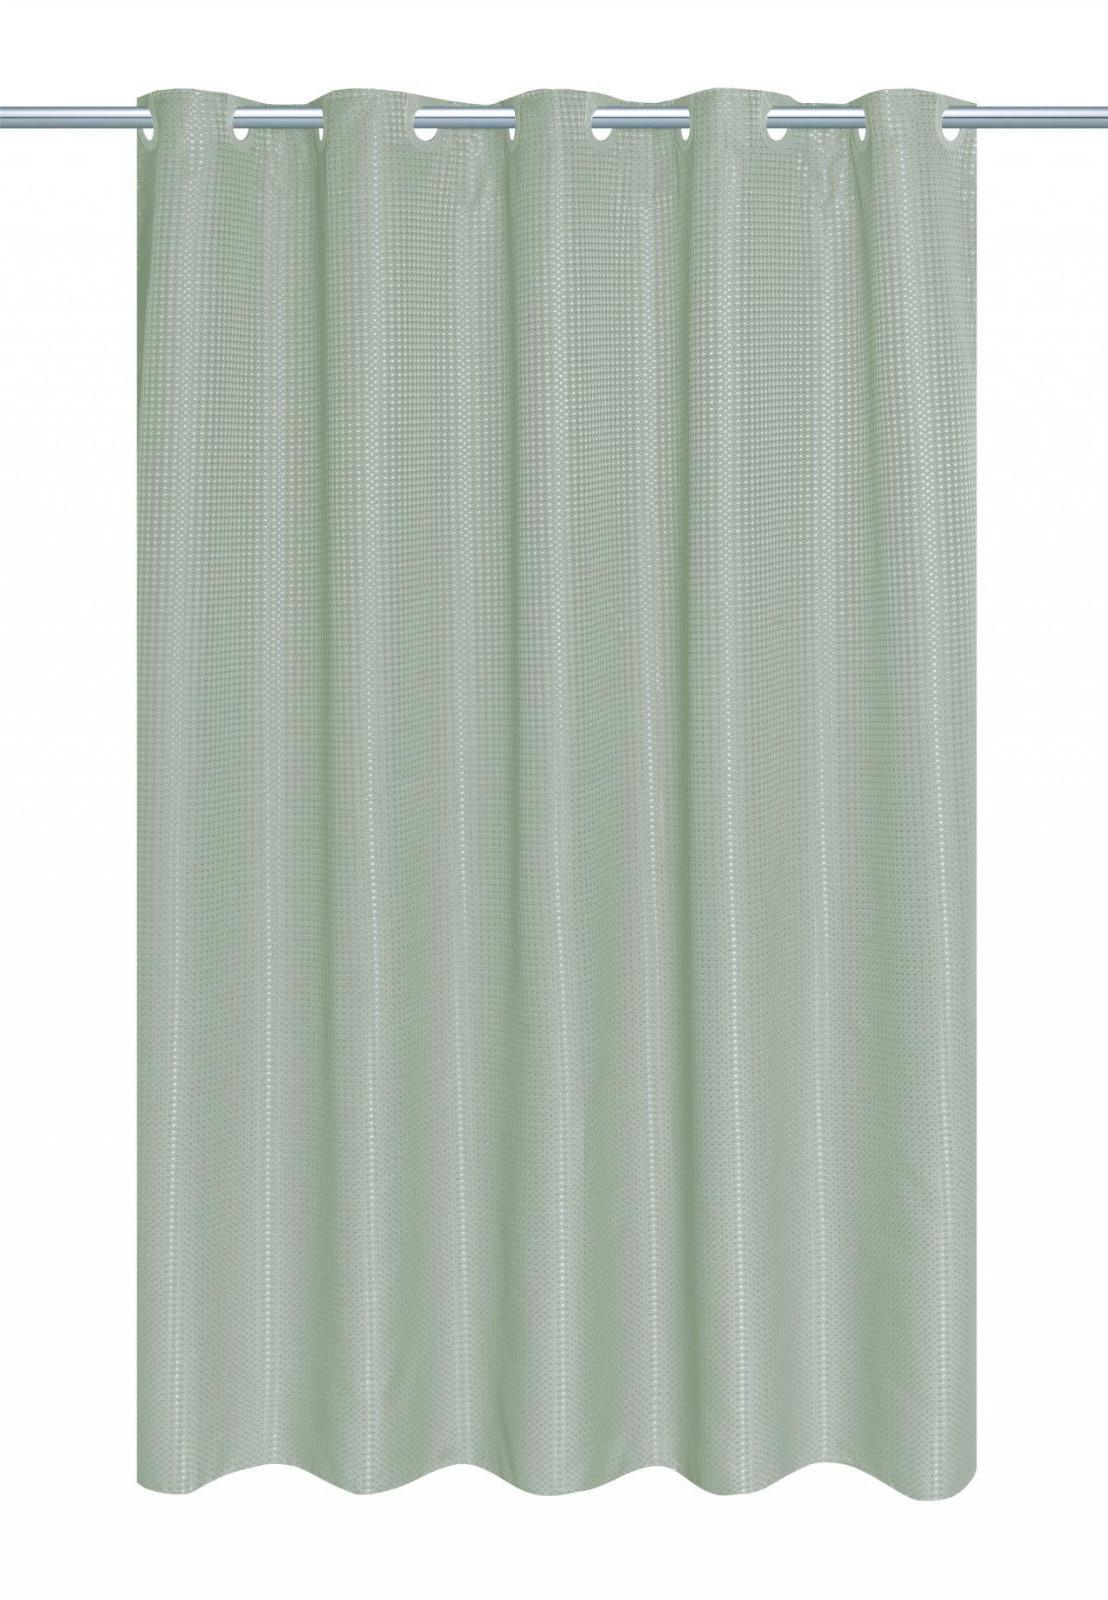 EZ-ON Hookless Fabric Shower Curtain With Liner - Colors